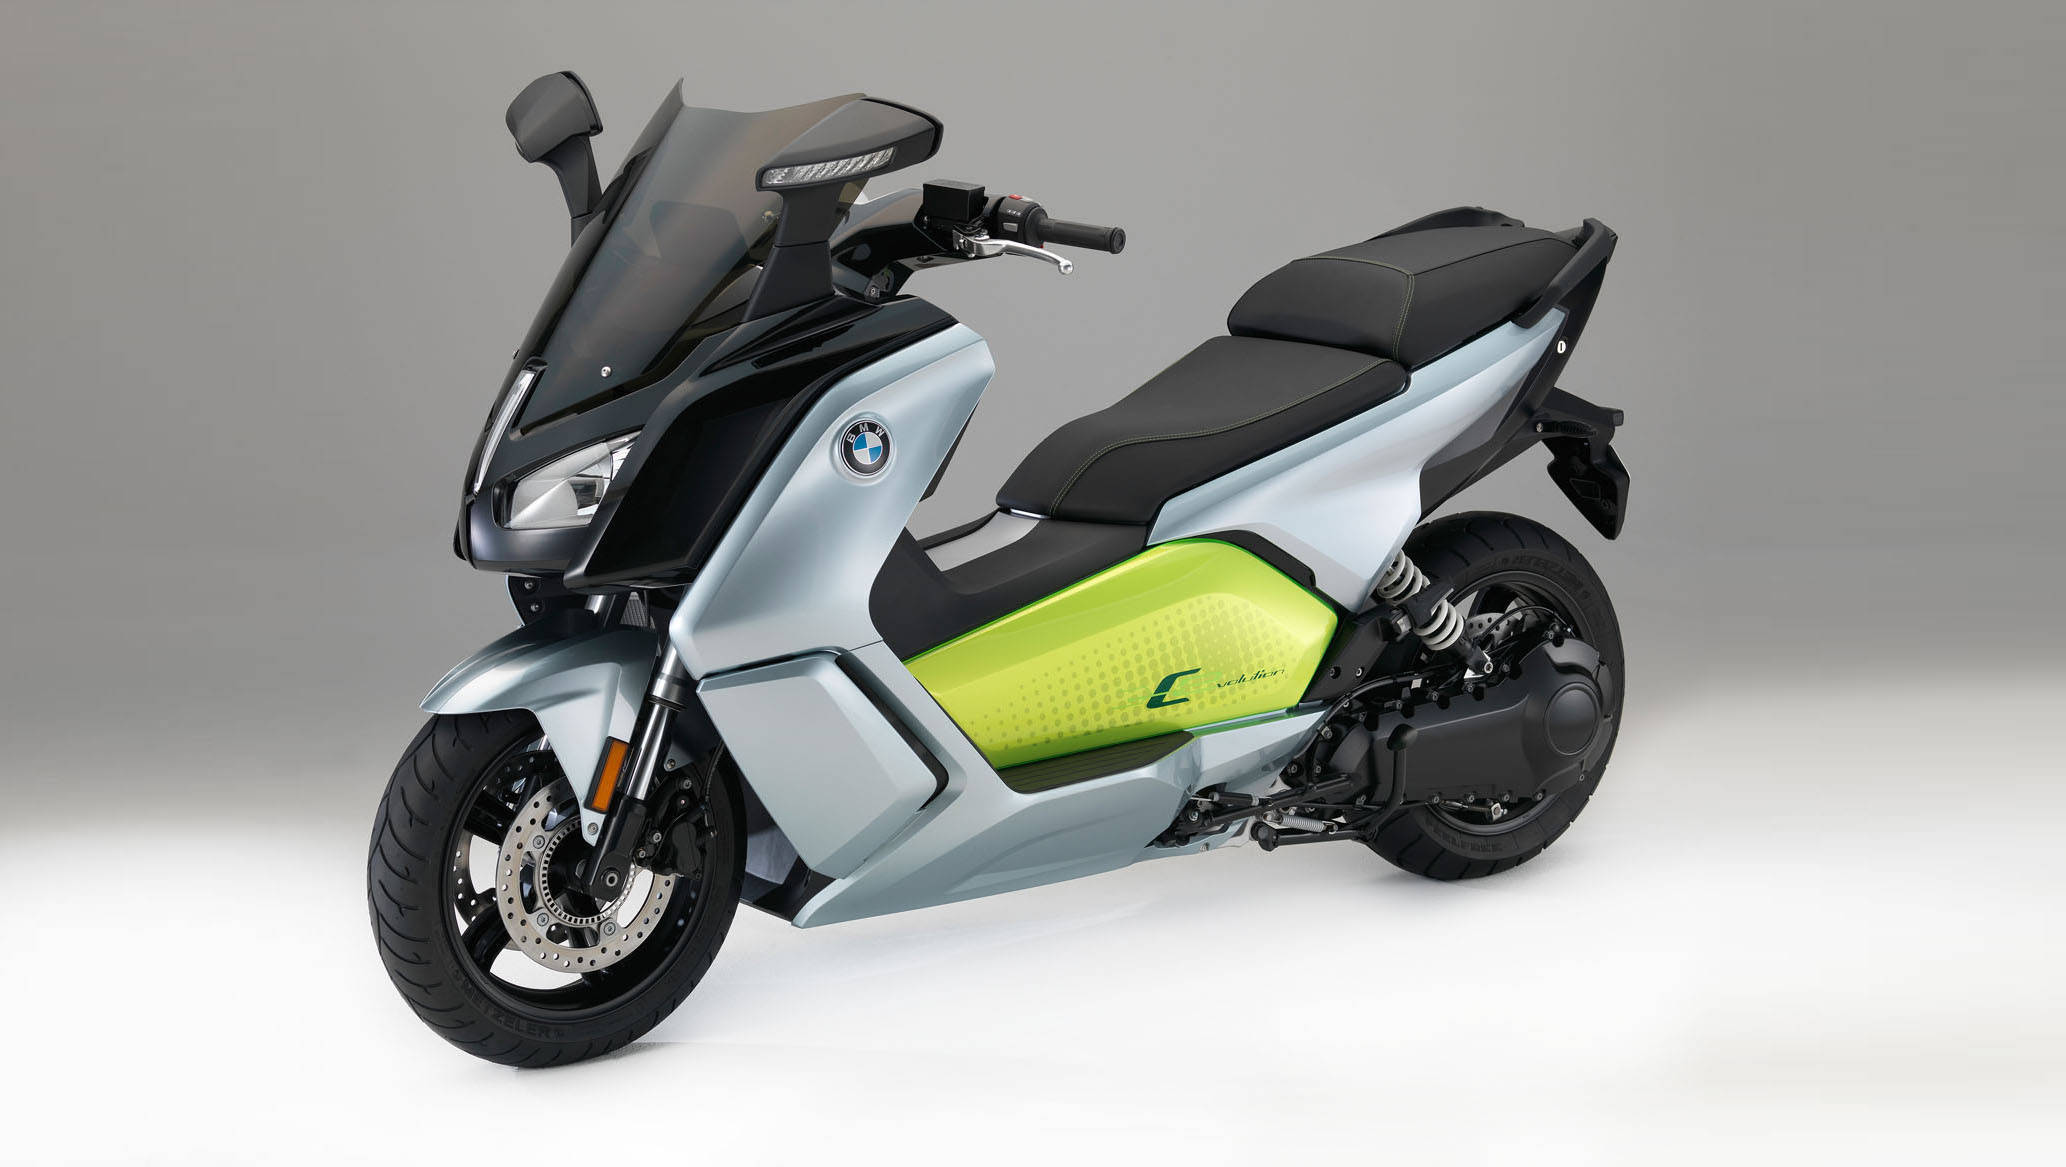 2016 Paris Motor Show: BMW to showcase C Evolution electric scooter